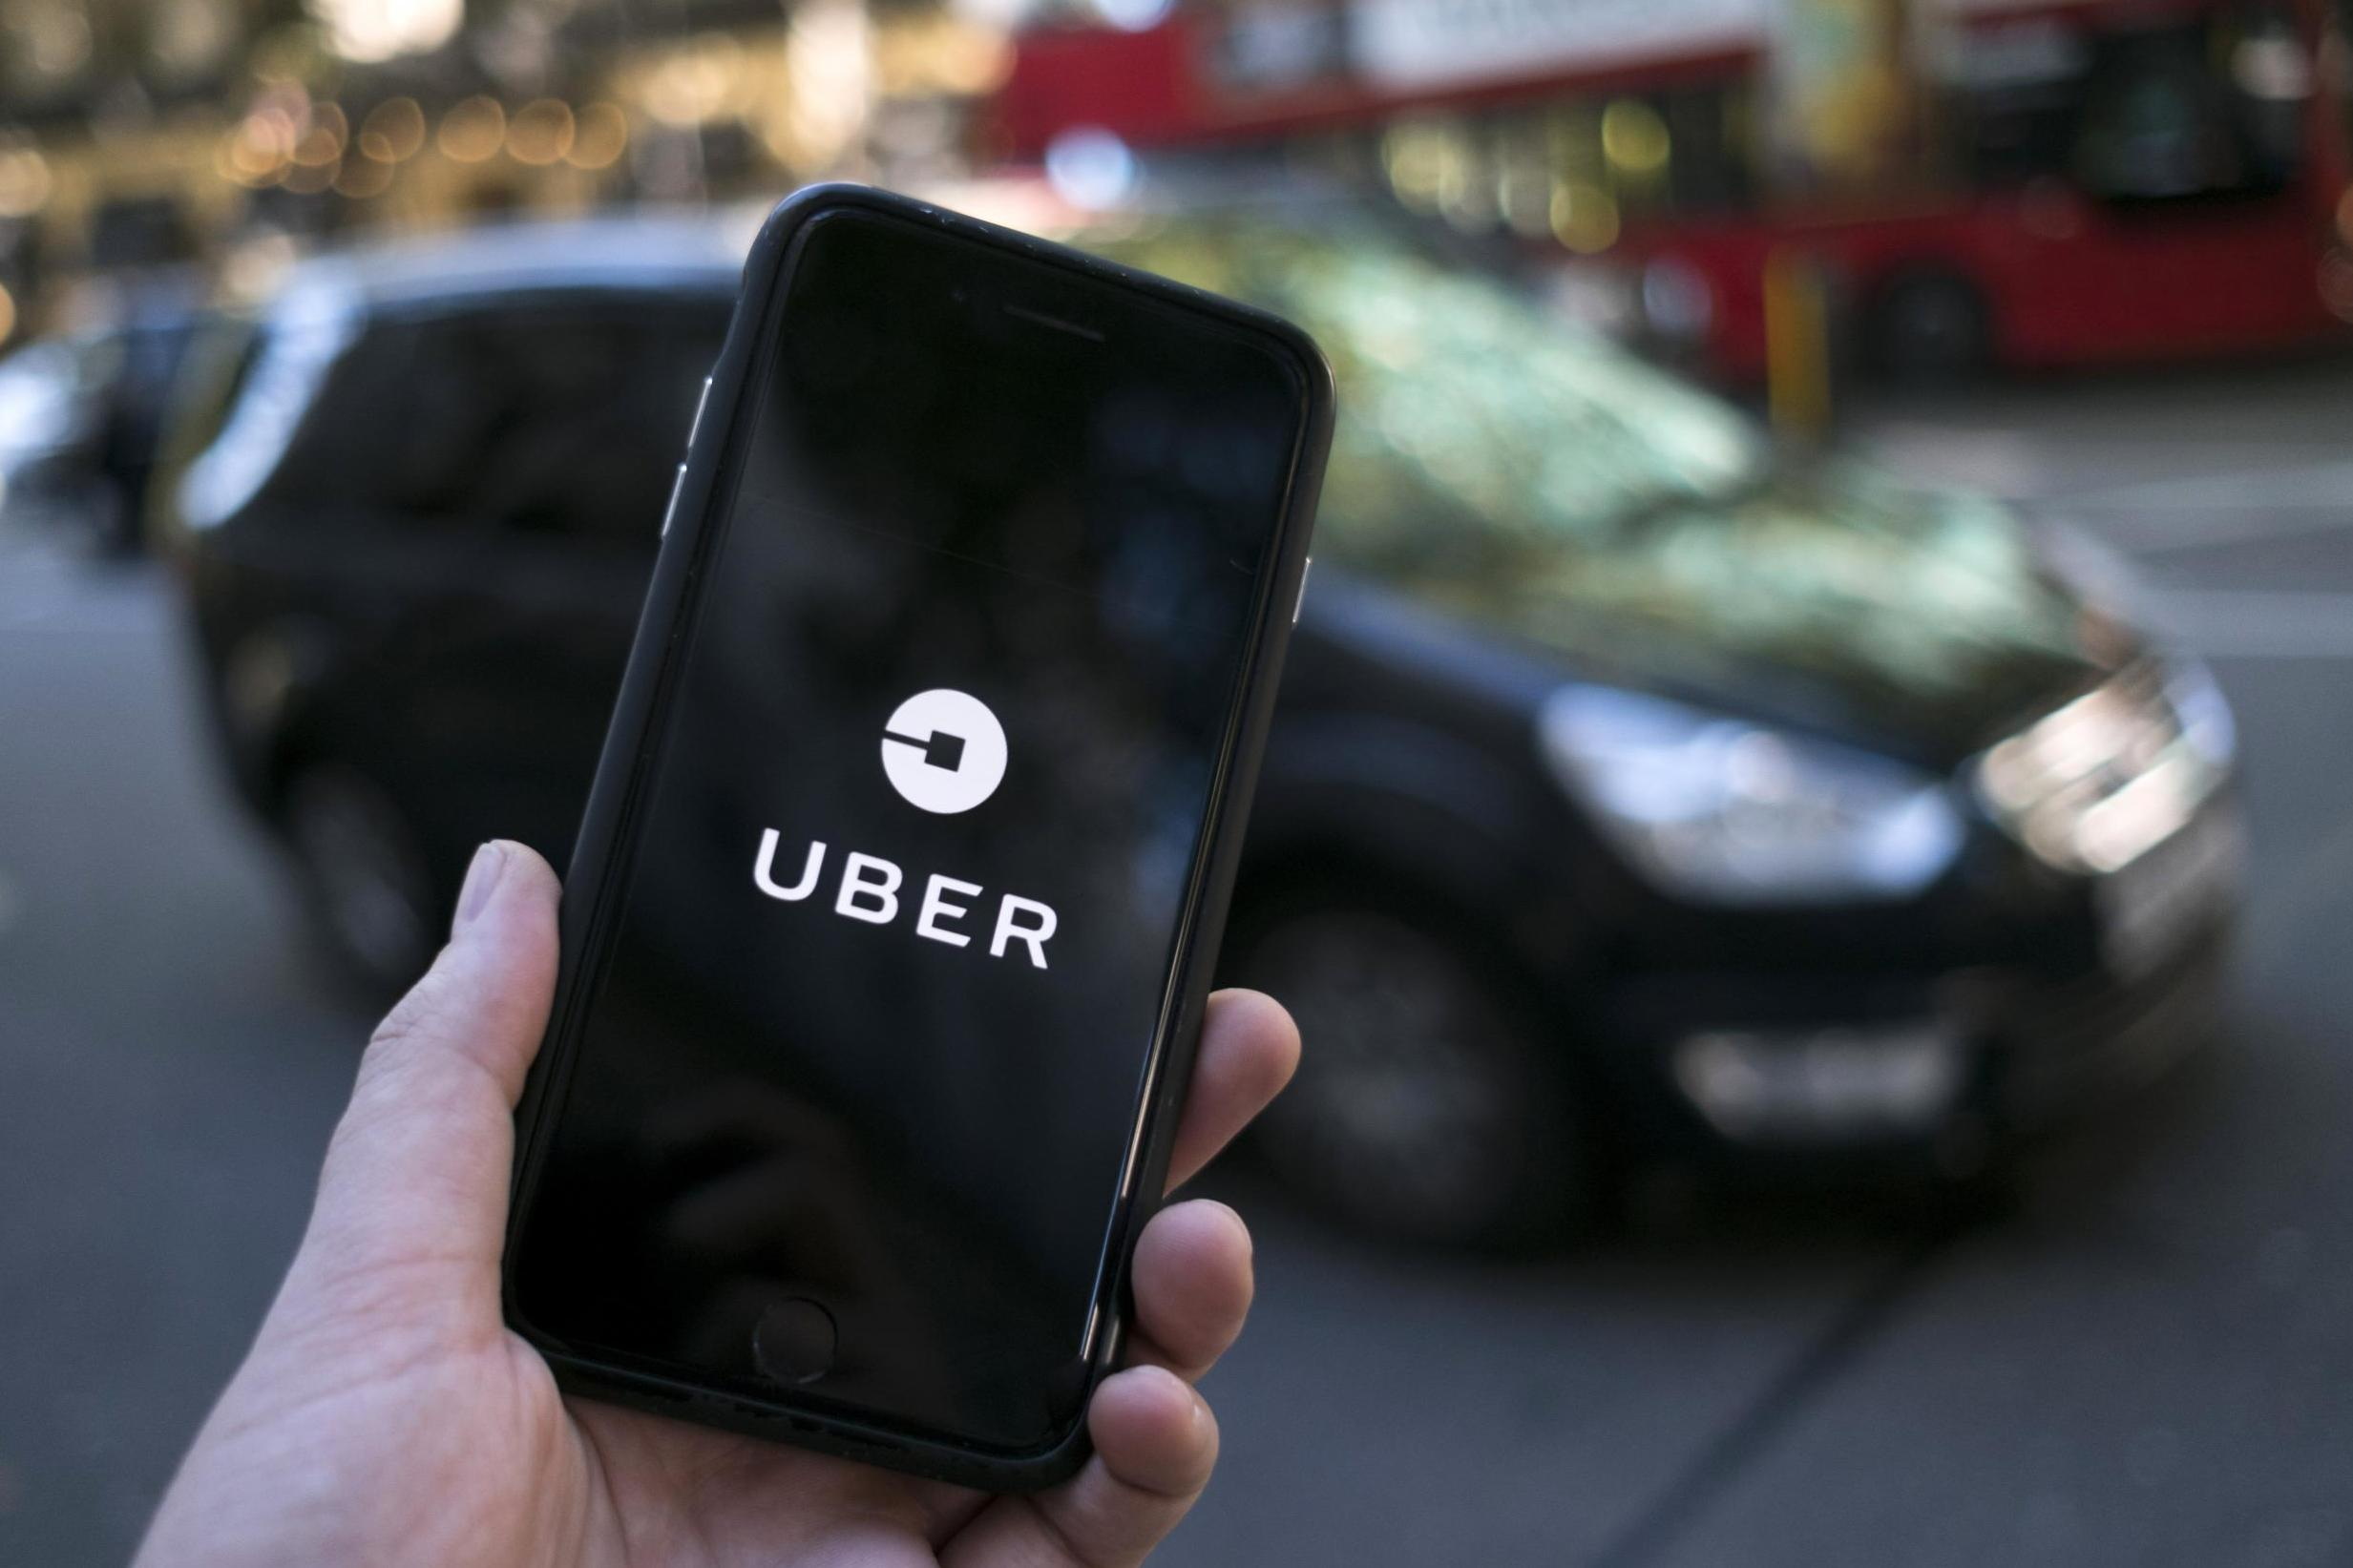 Uber taxis proyecto